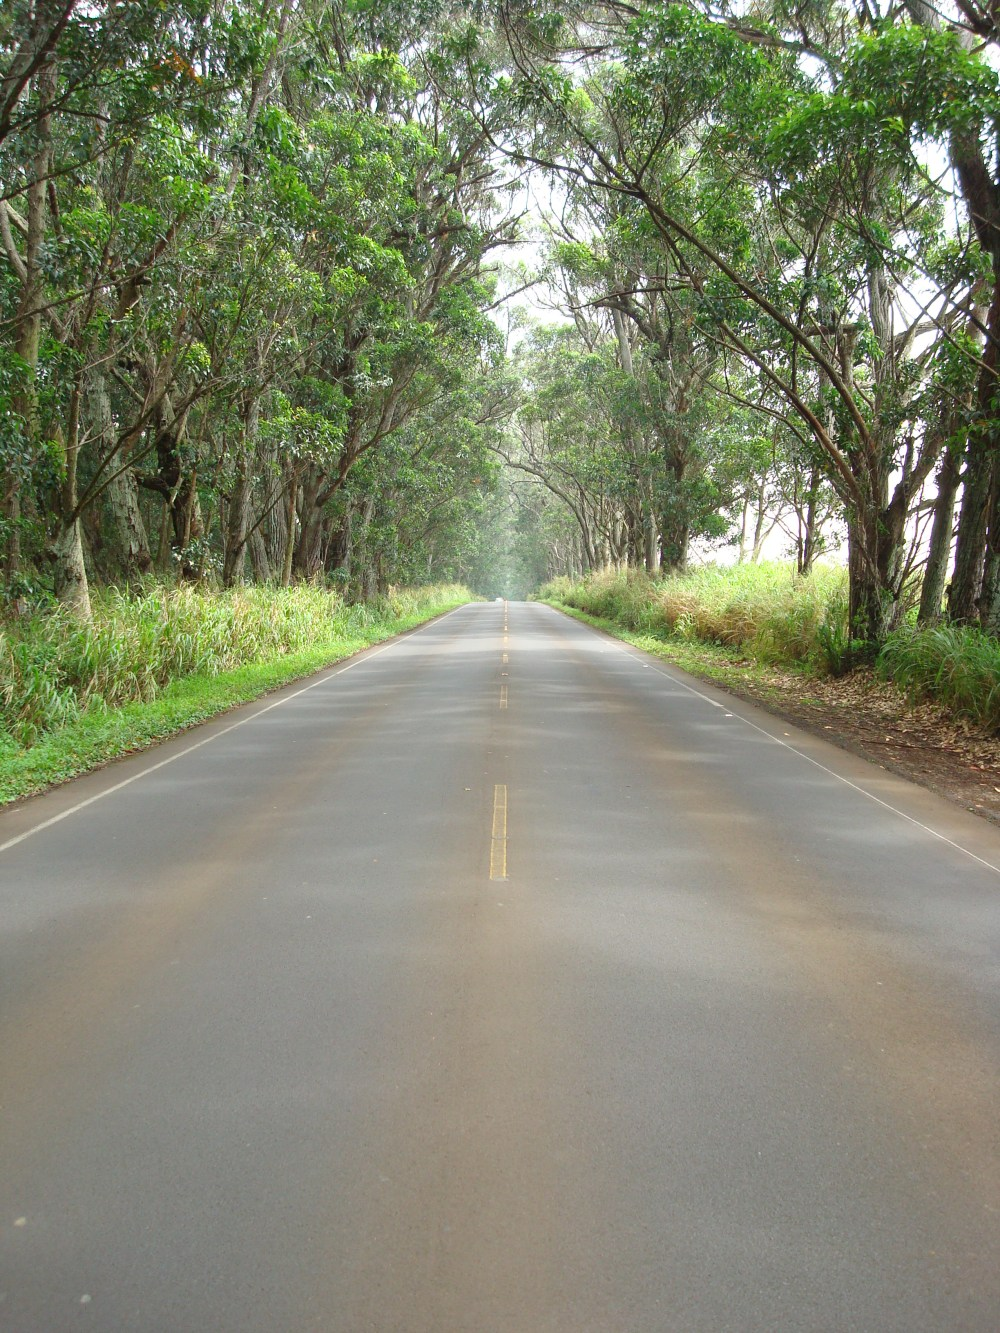 Drive from Lihue to South Shore, and you'll go right through the tree tunnel.